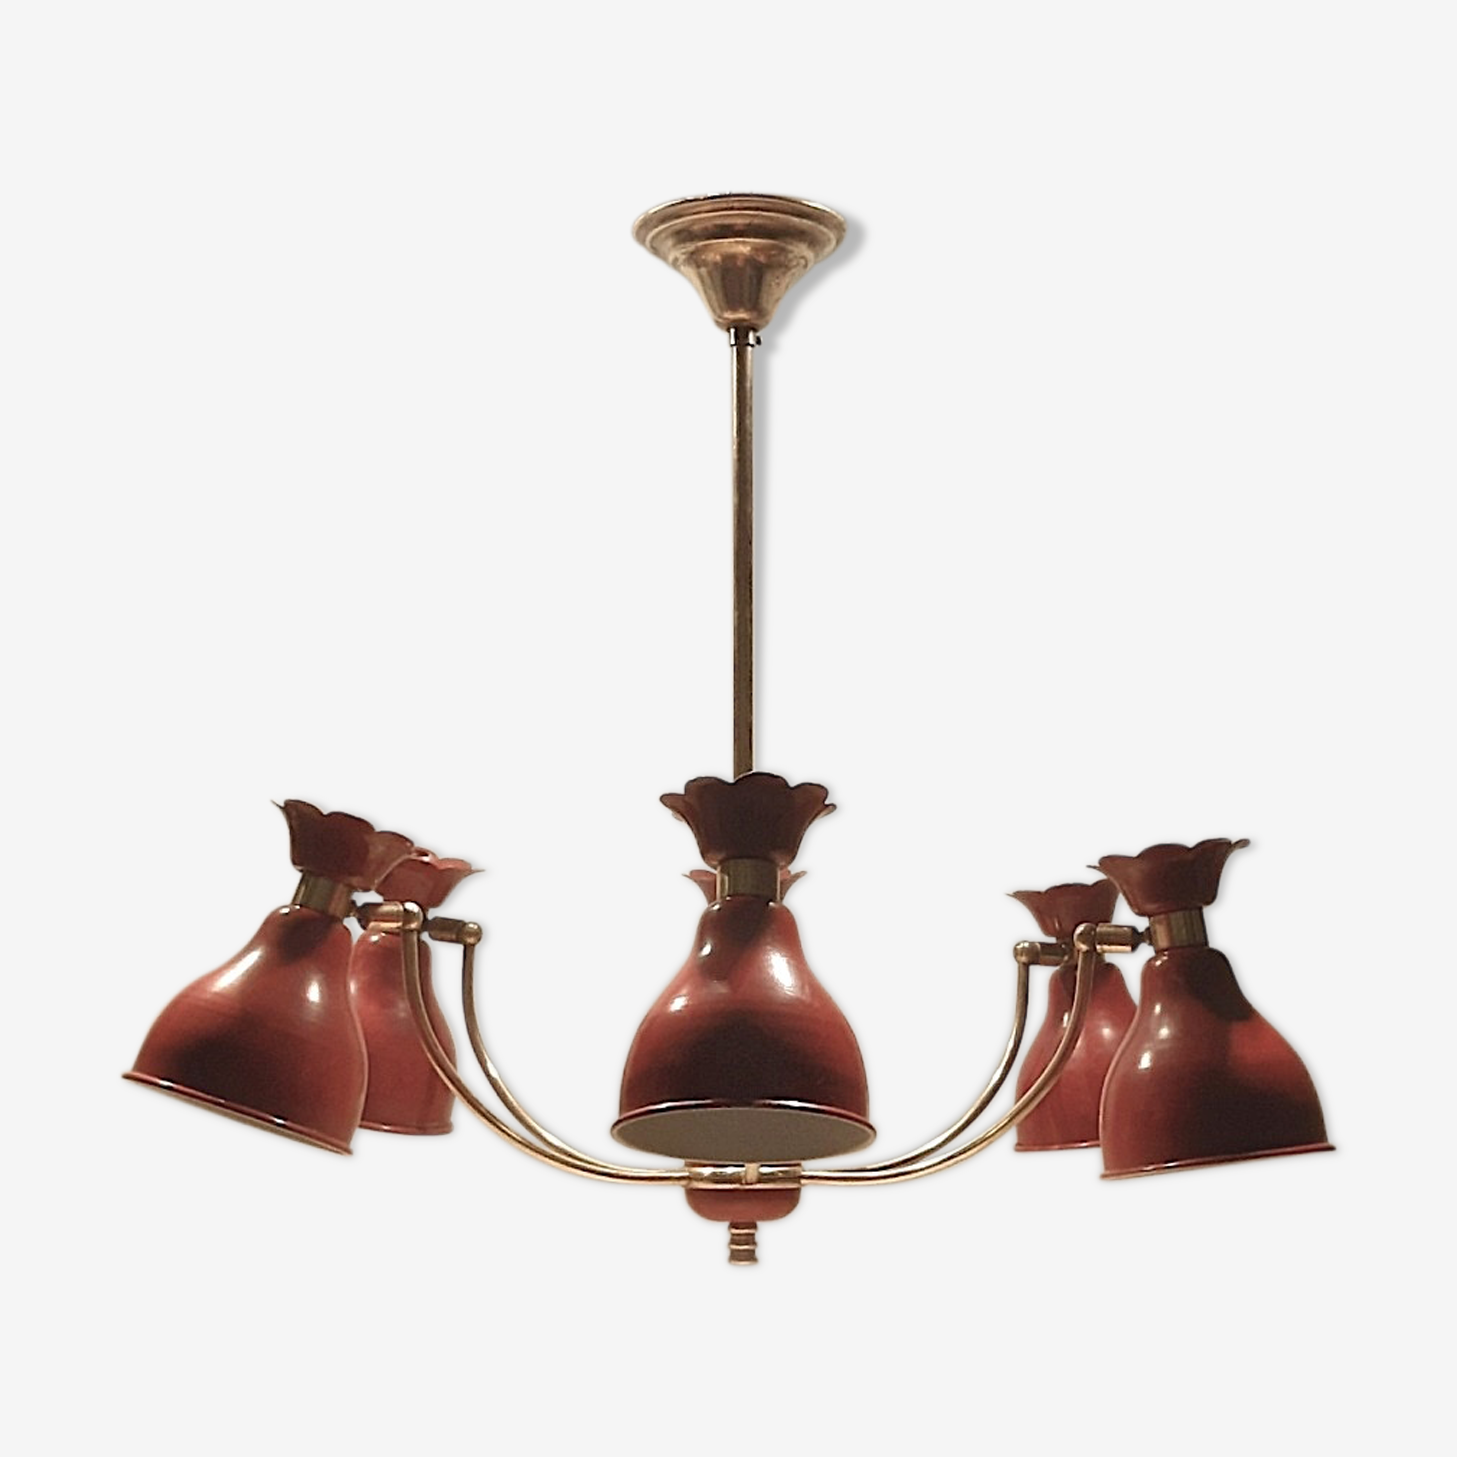 Chandelier 6 lights diffusers red & brass, 1950